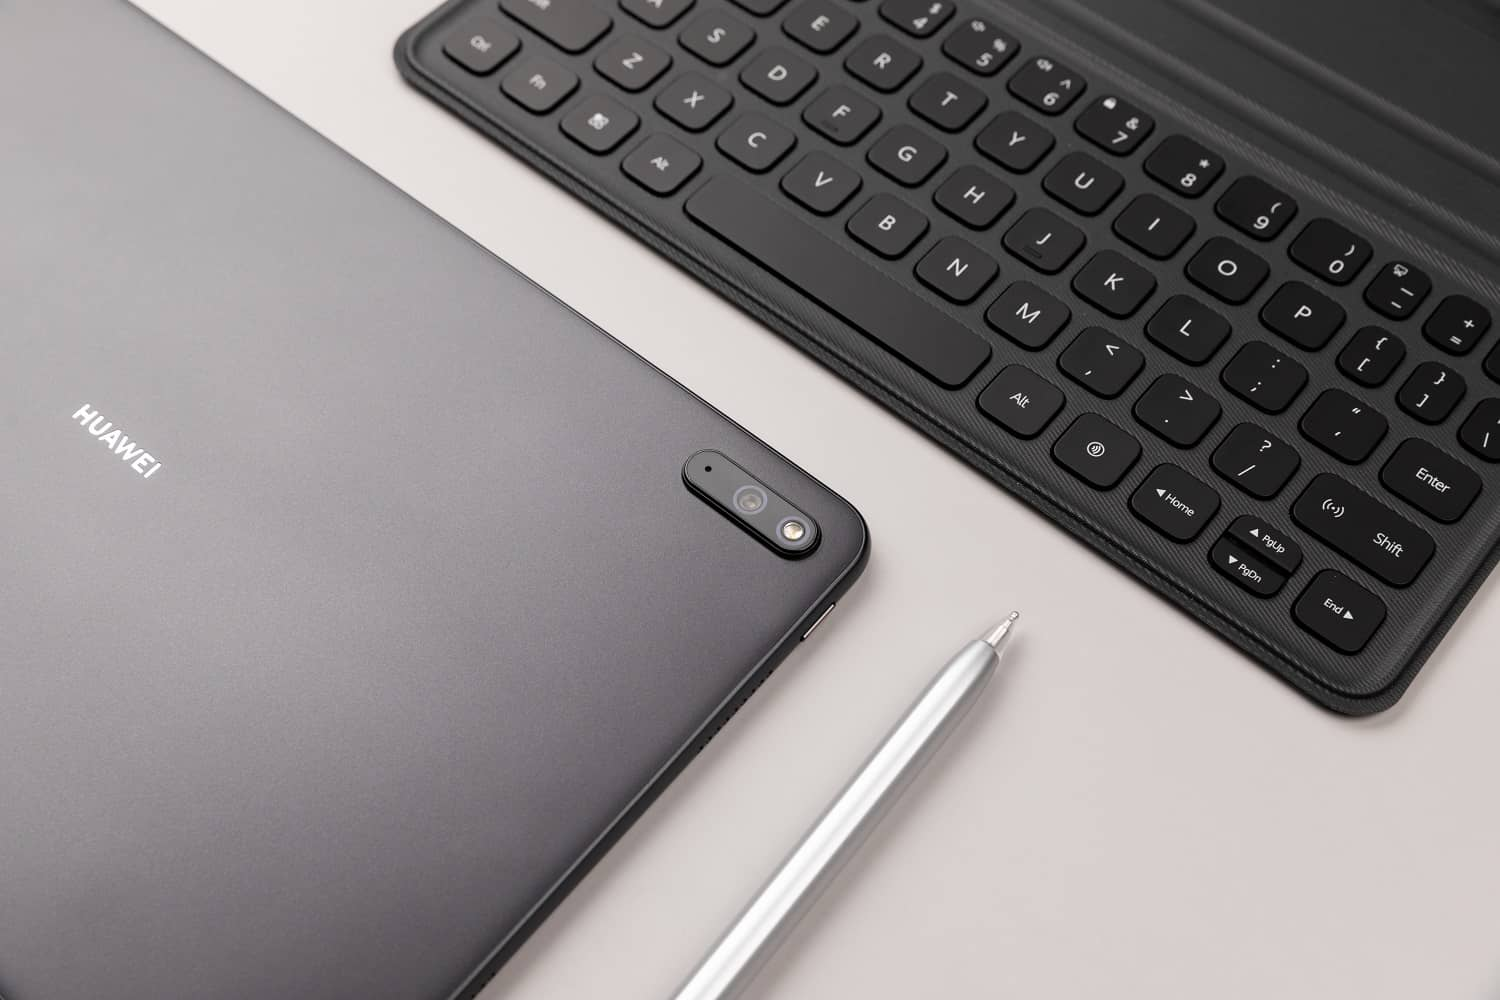 Last Chance: Pre-Order HUAWEI MatePad 11 and HUAWEI MateBook Variants, Freebies Worth Up To RM1,207